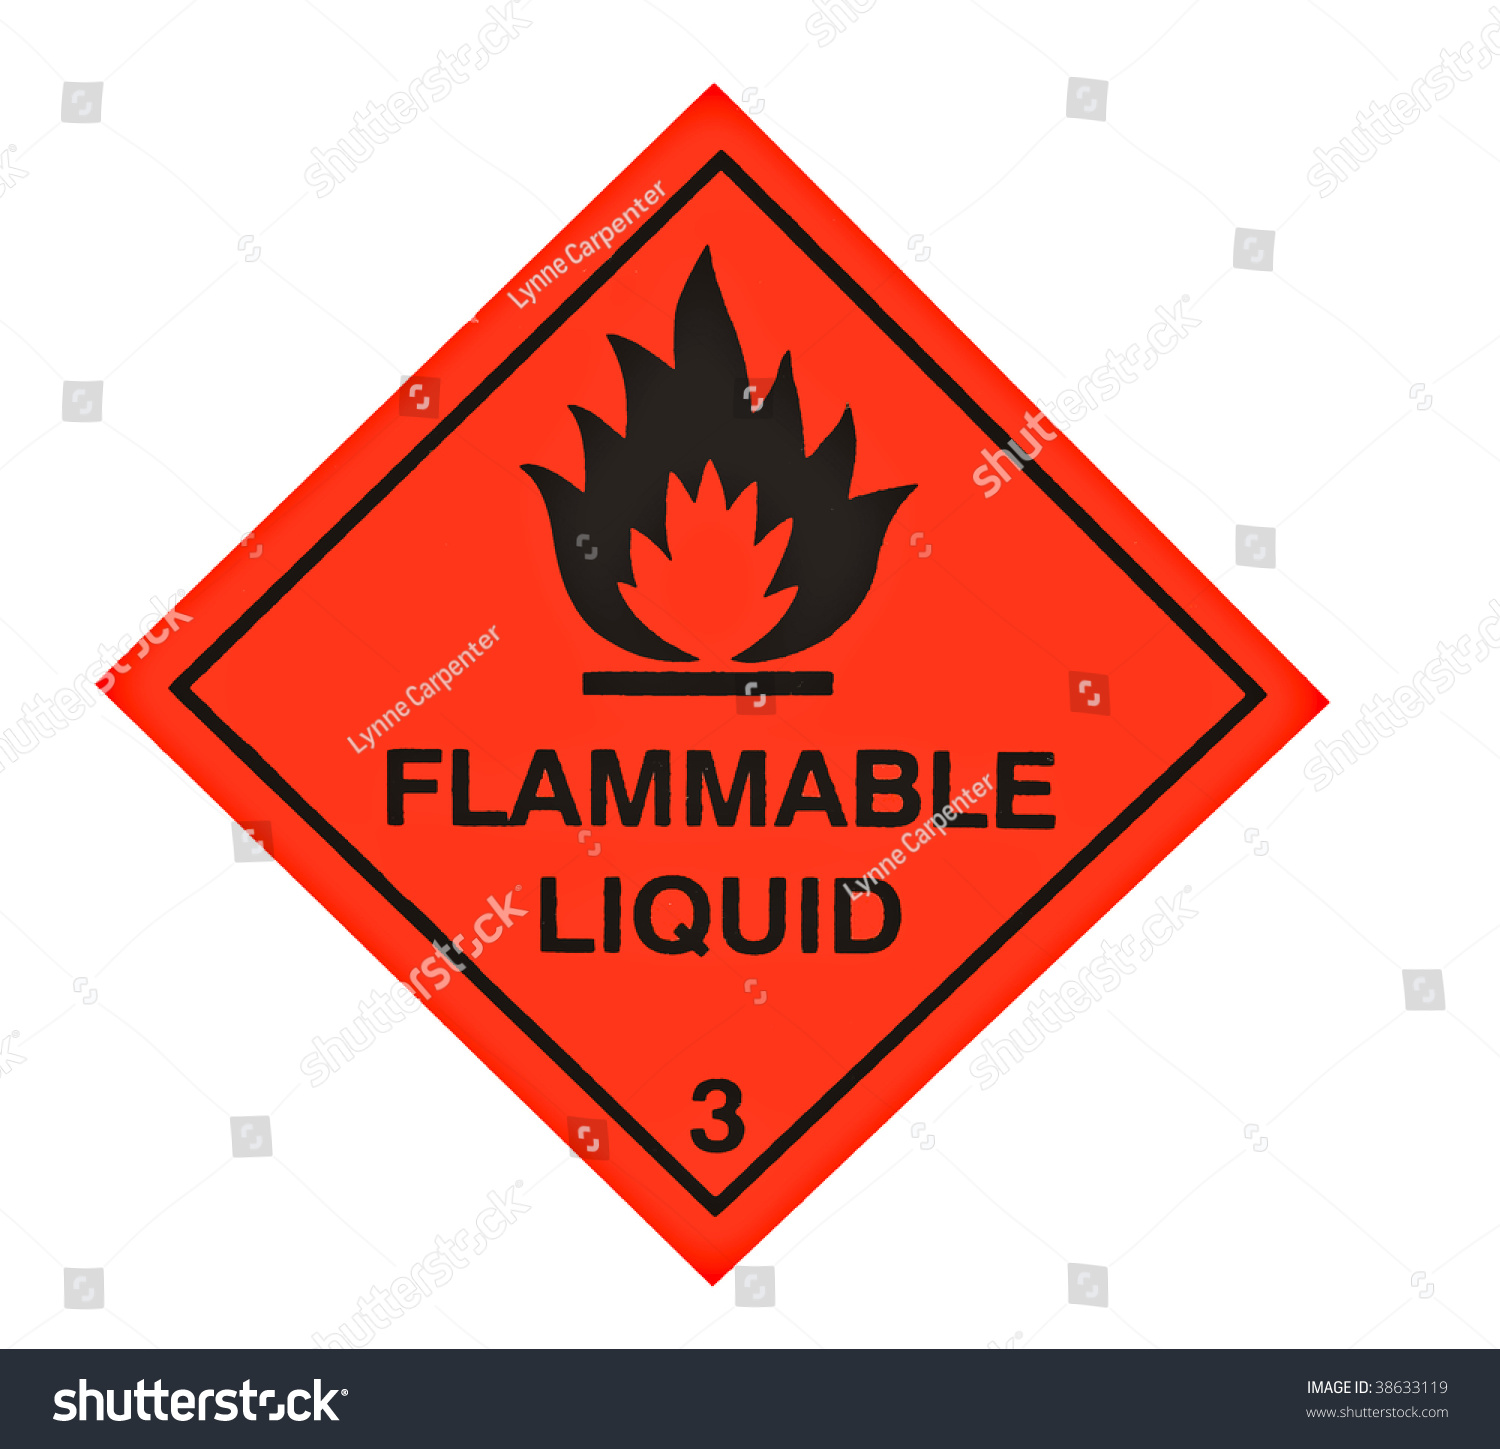 A Red Diamond Shaped Sign Warning Of Flammable Liquid ...